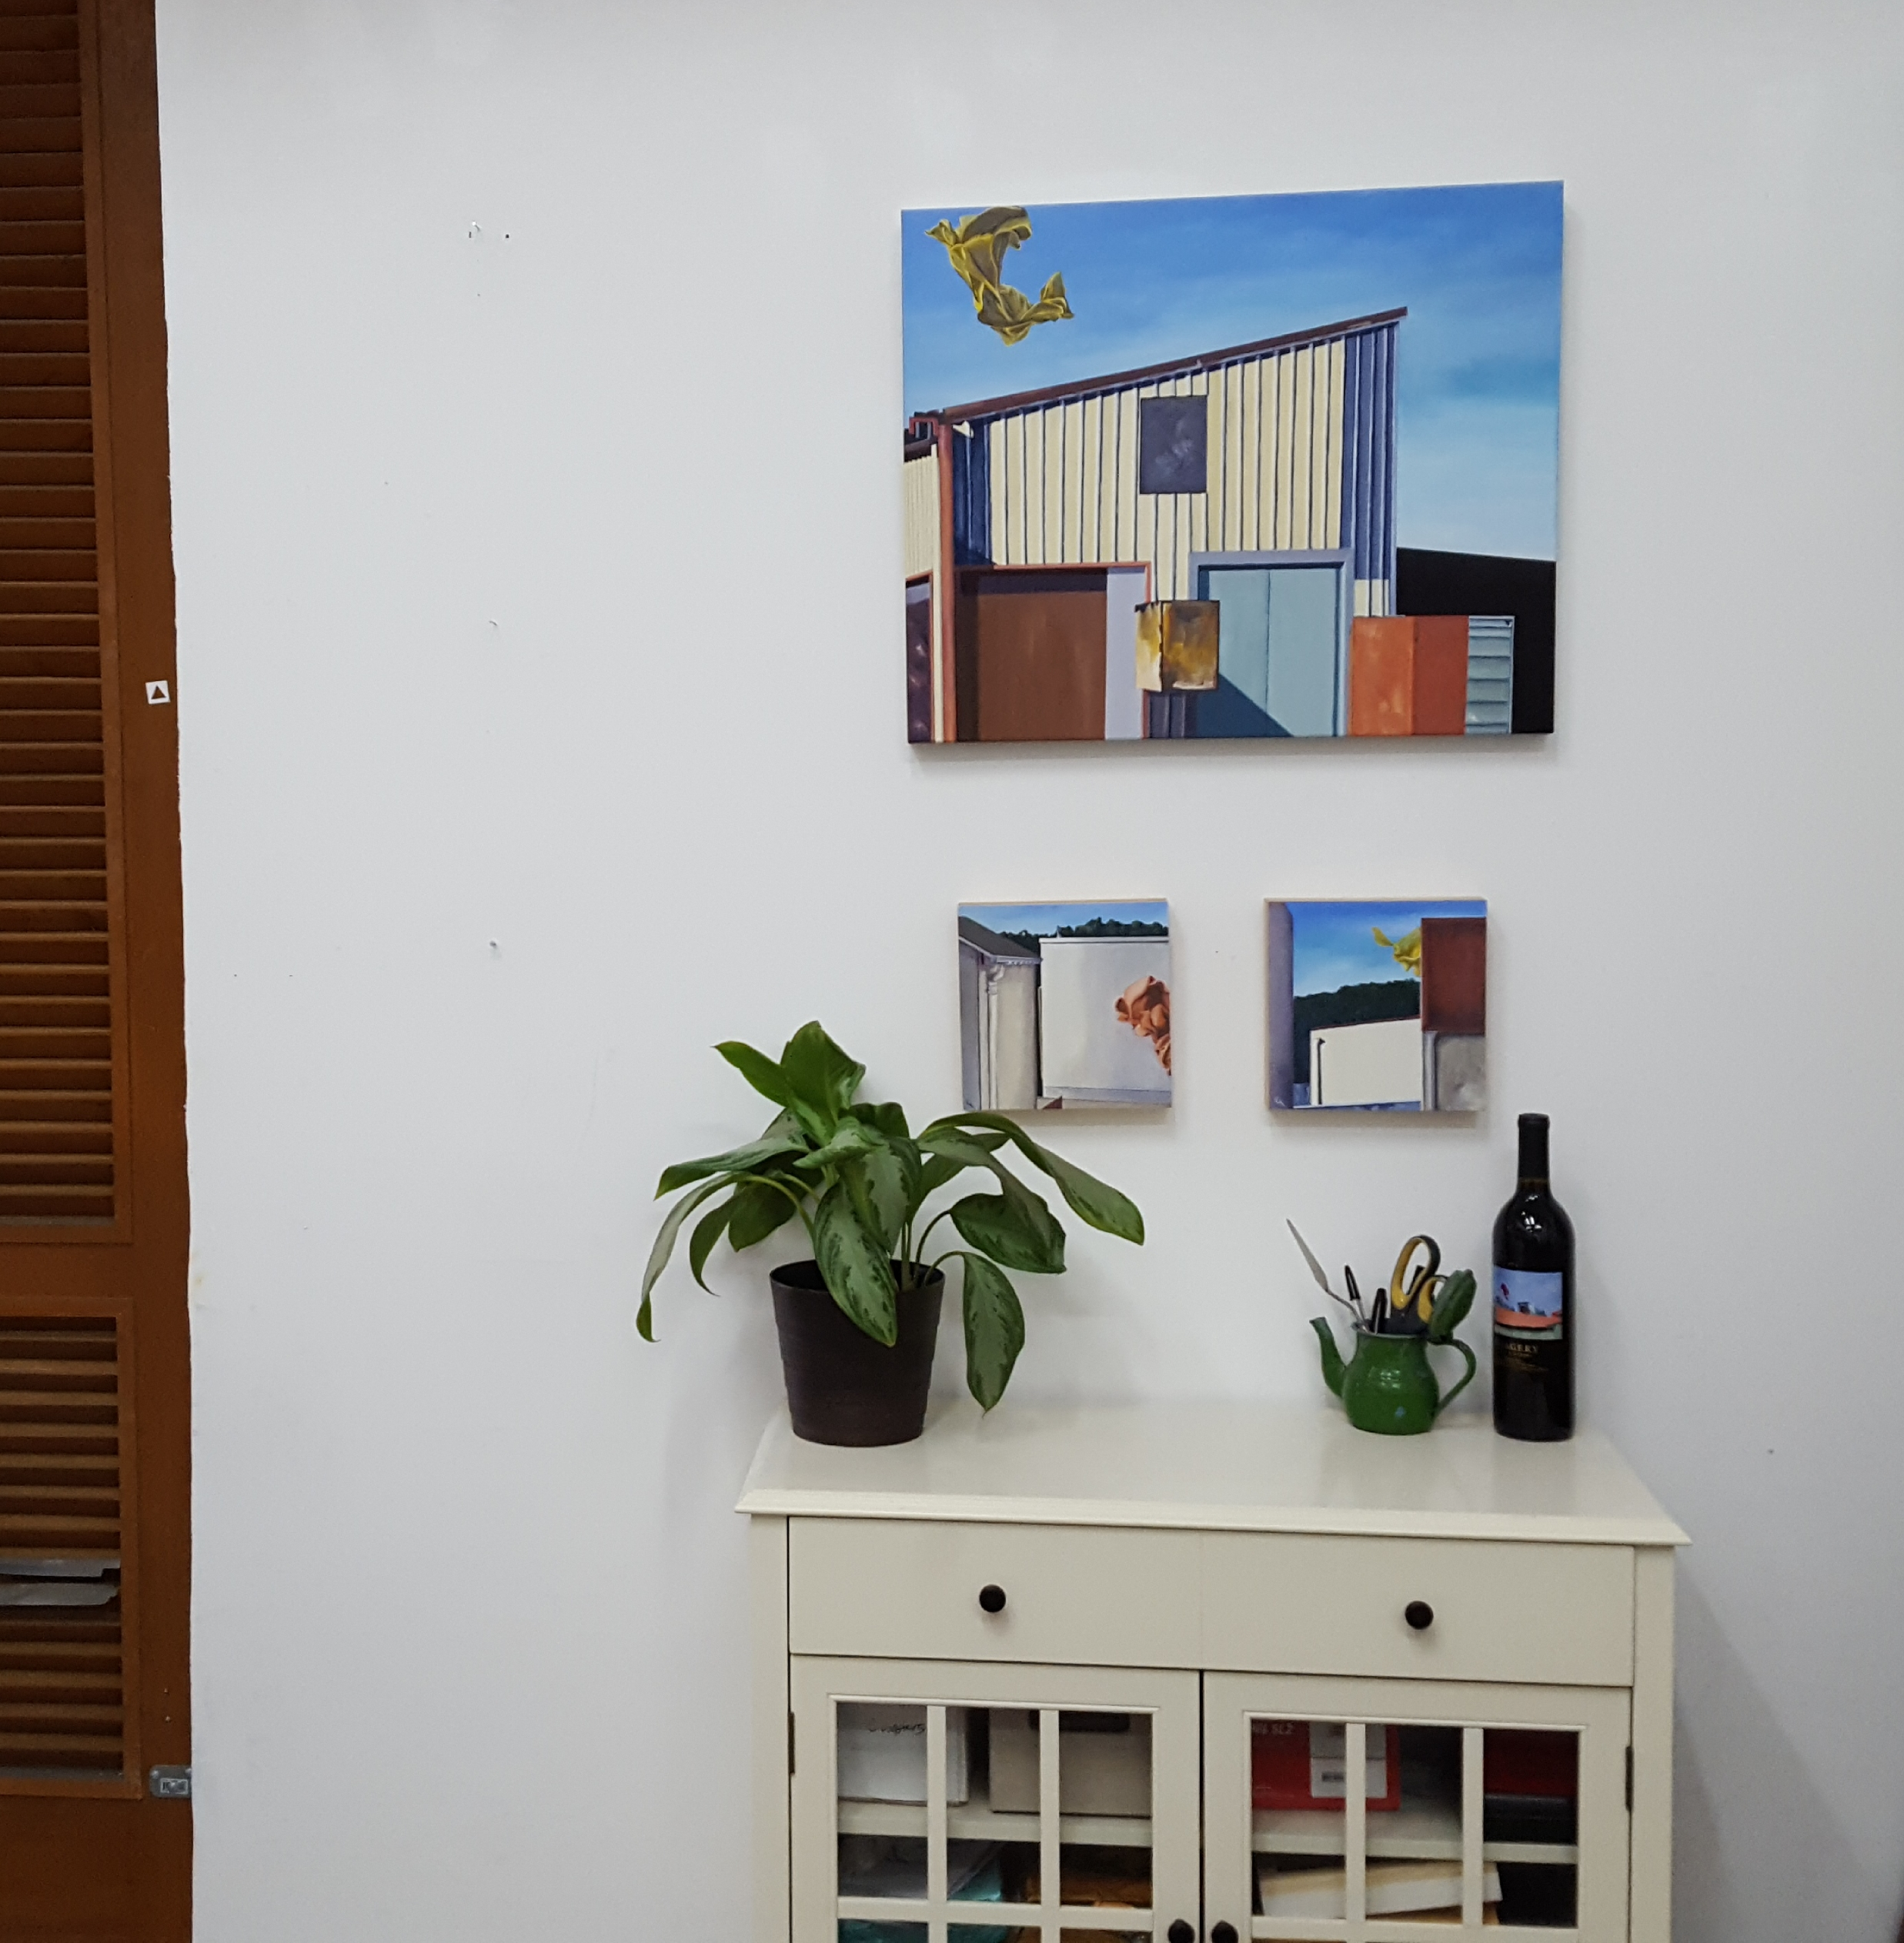 C. Rasmussen - Available works at Gabba Gallery's Wishlist 6 show. As photographed in artist's studio.